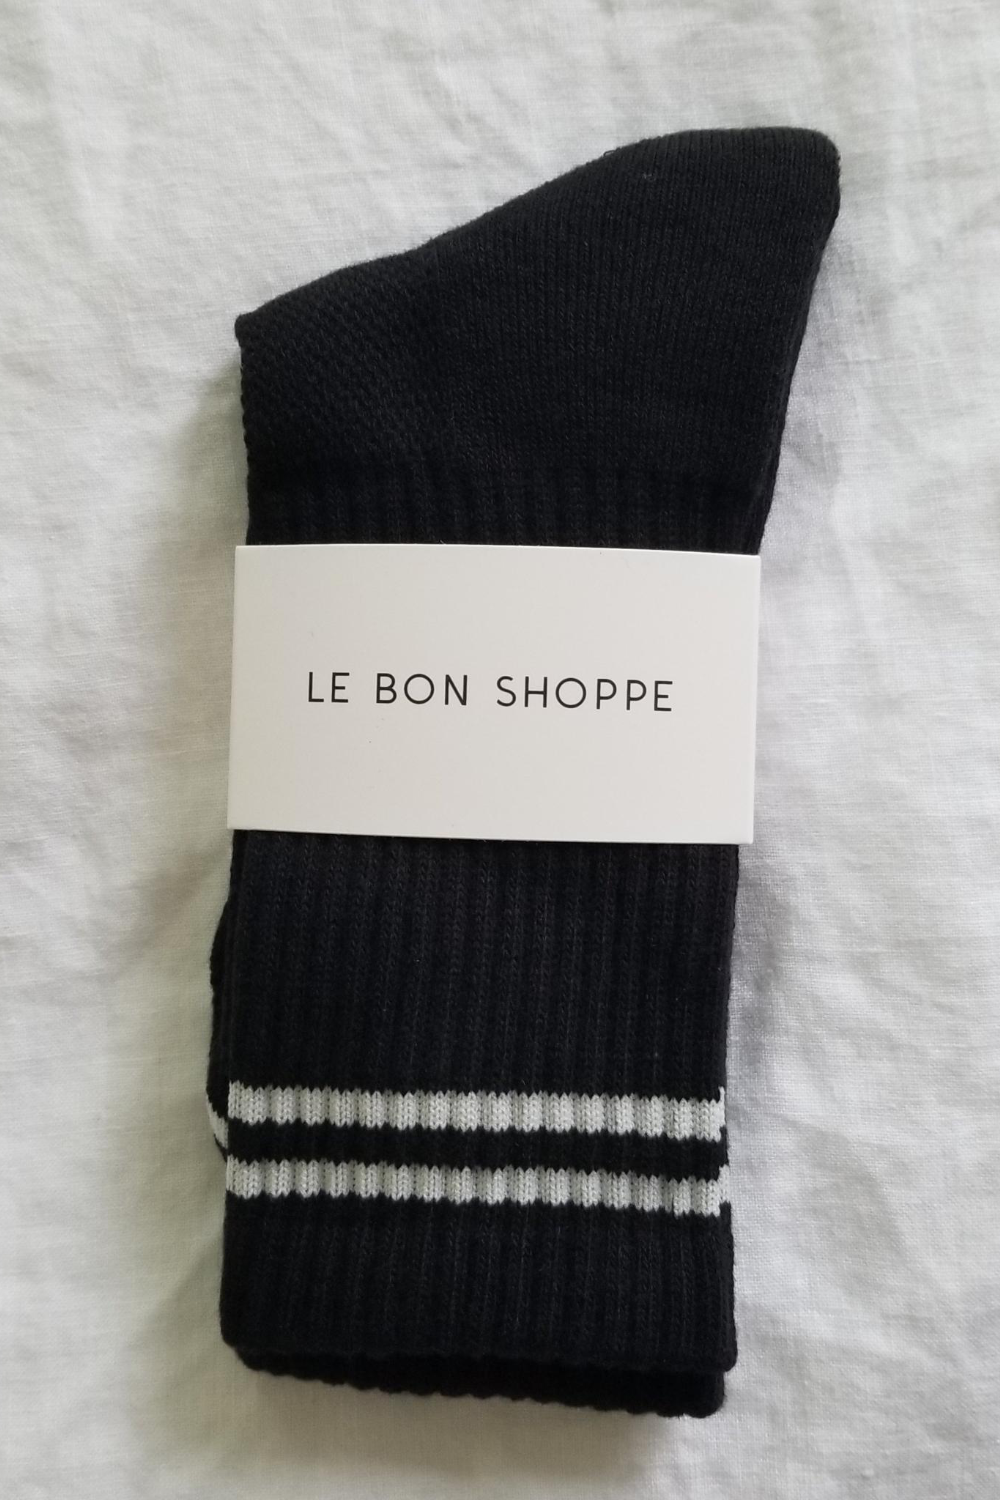 Le Bon Shoppe Boyfriend Socks in Noir